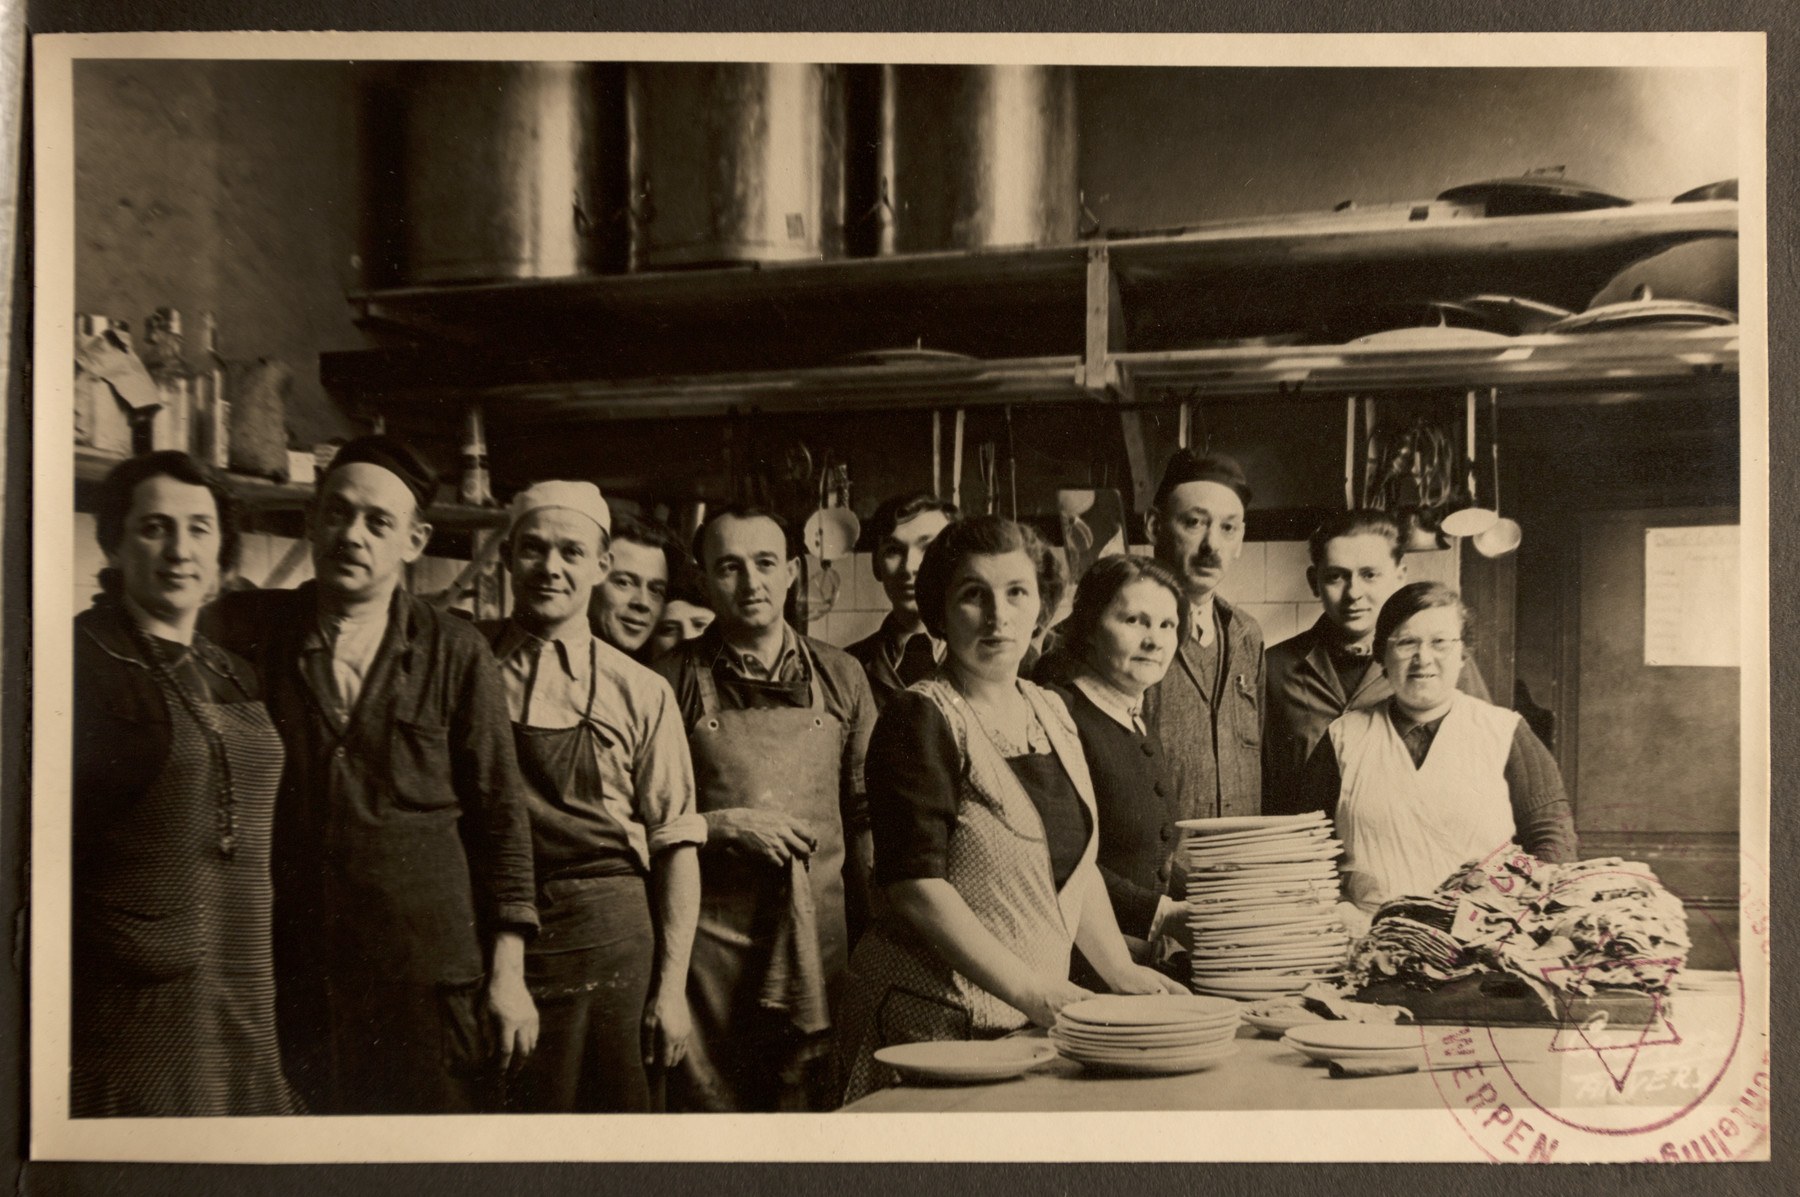 Group portrait of the kitchen staff for the Jewish Refugee Aid Committee of Antwerp.